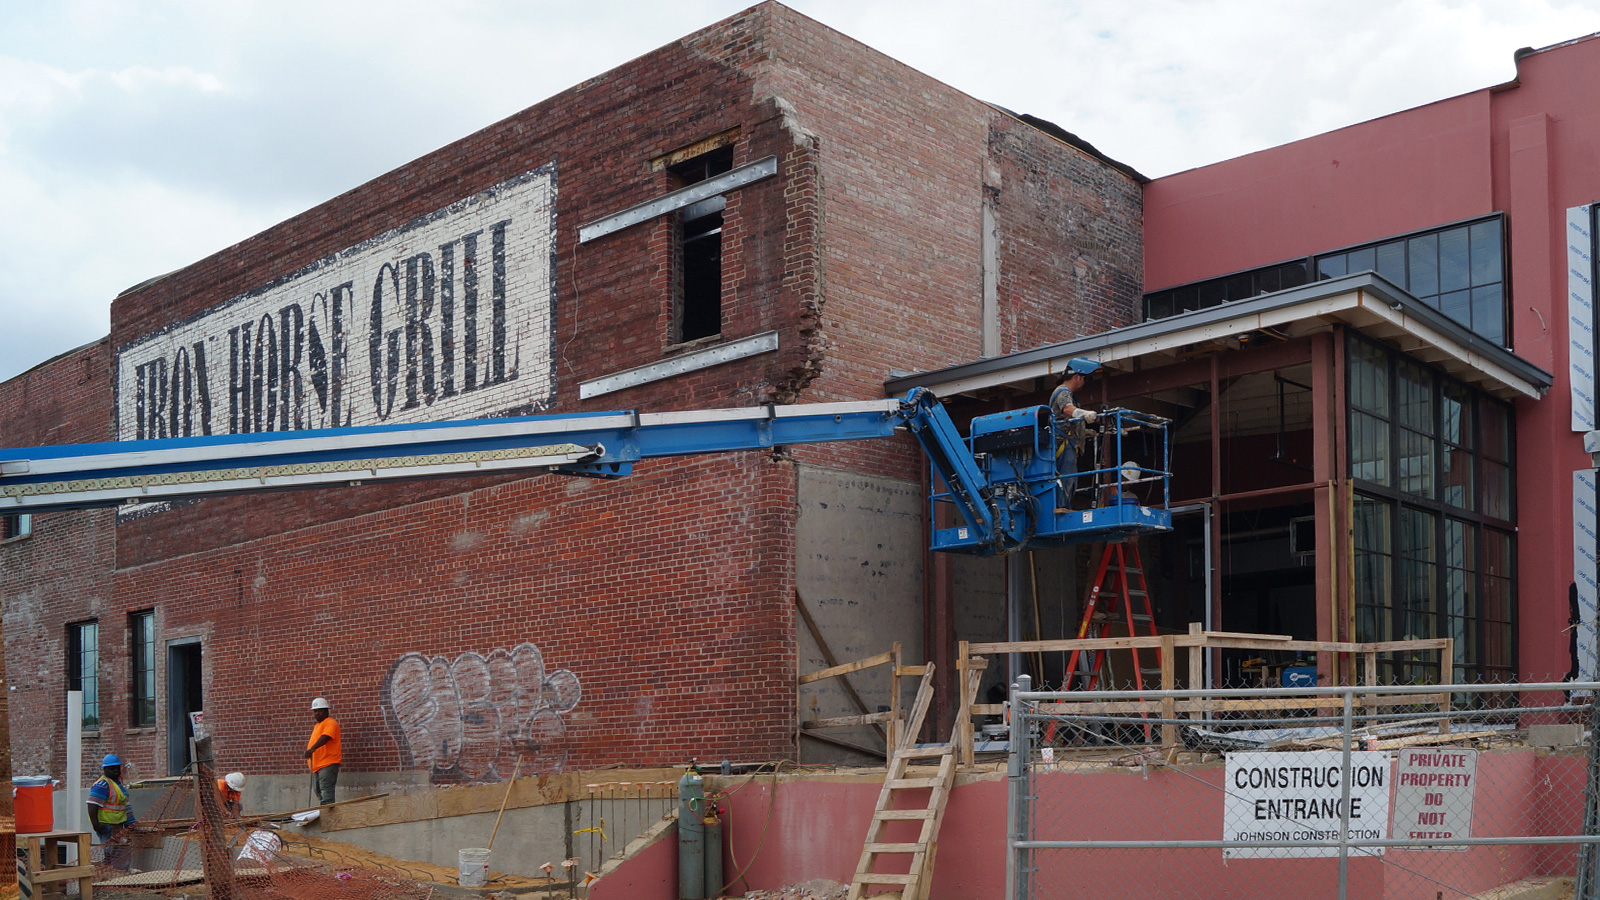 The Iron Horse Grill